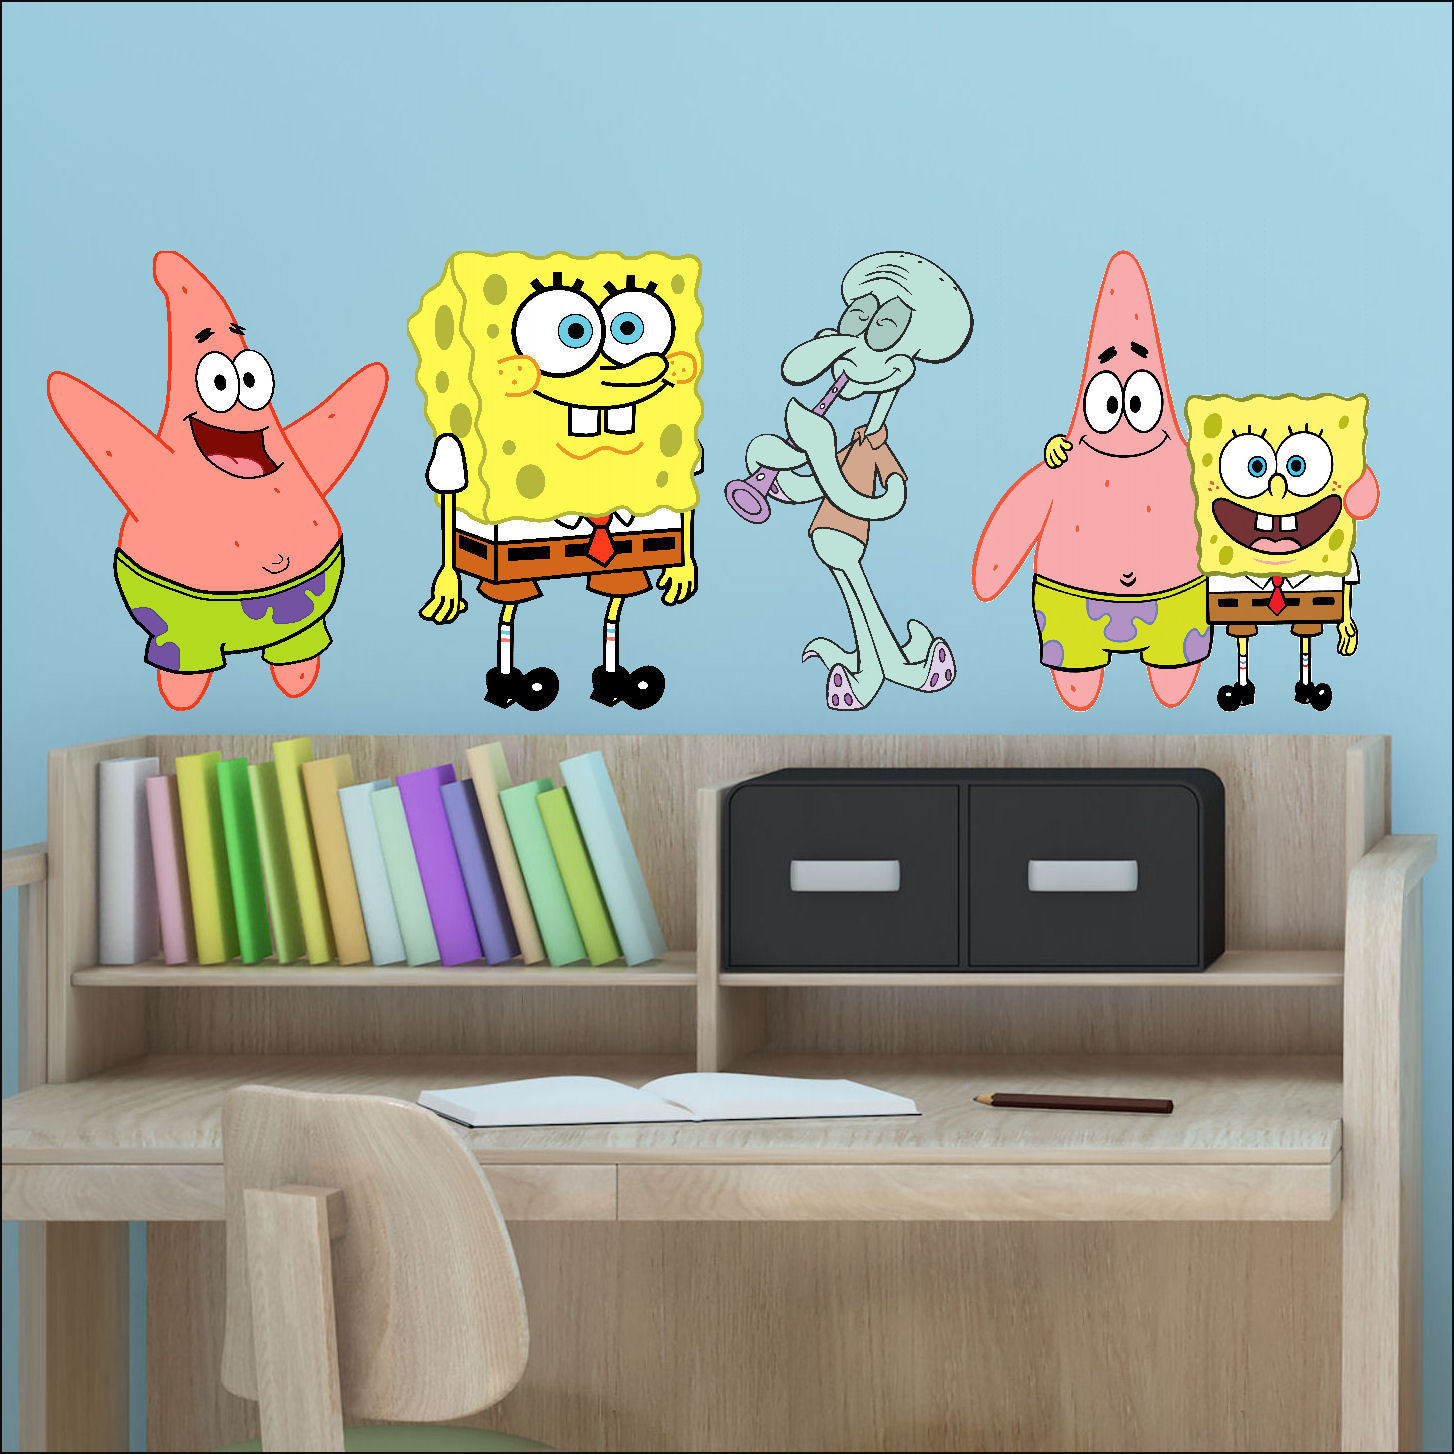 X Spongebob Patrick Squidward Colour Wall Stickers Vinyl - Spongebob wall decals